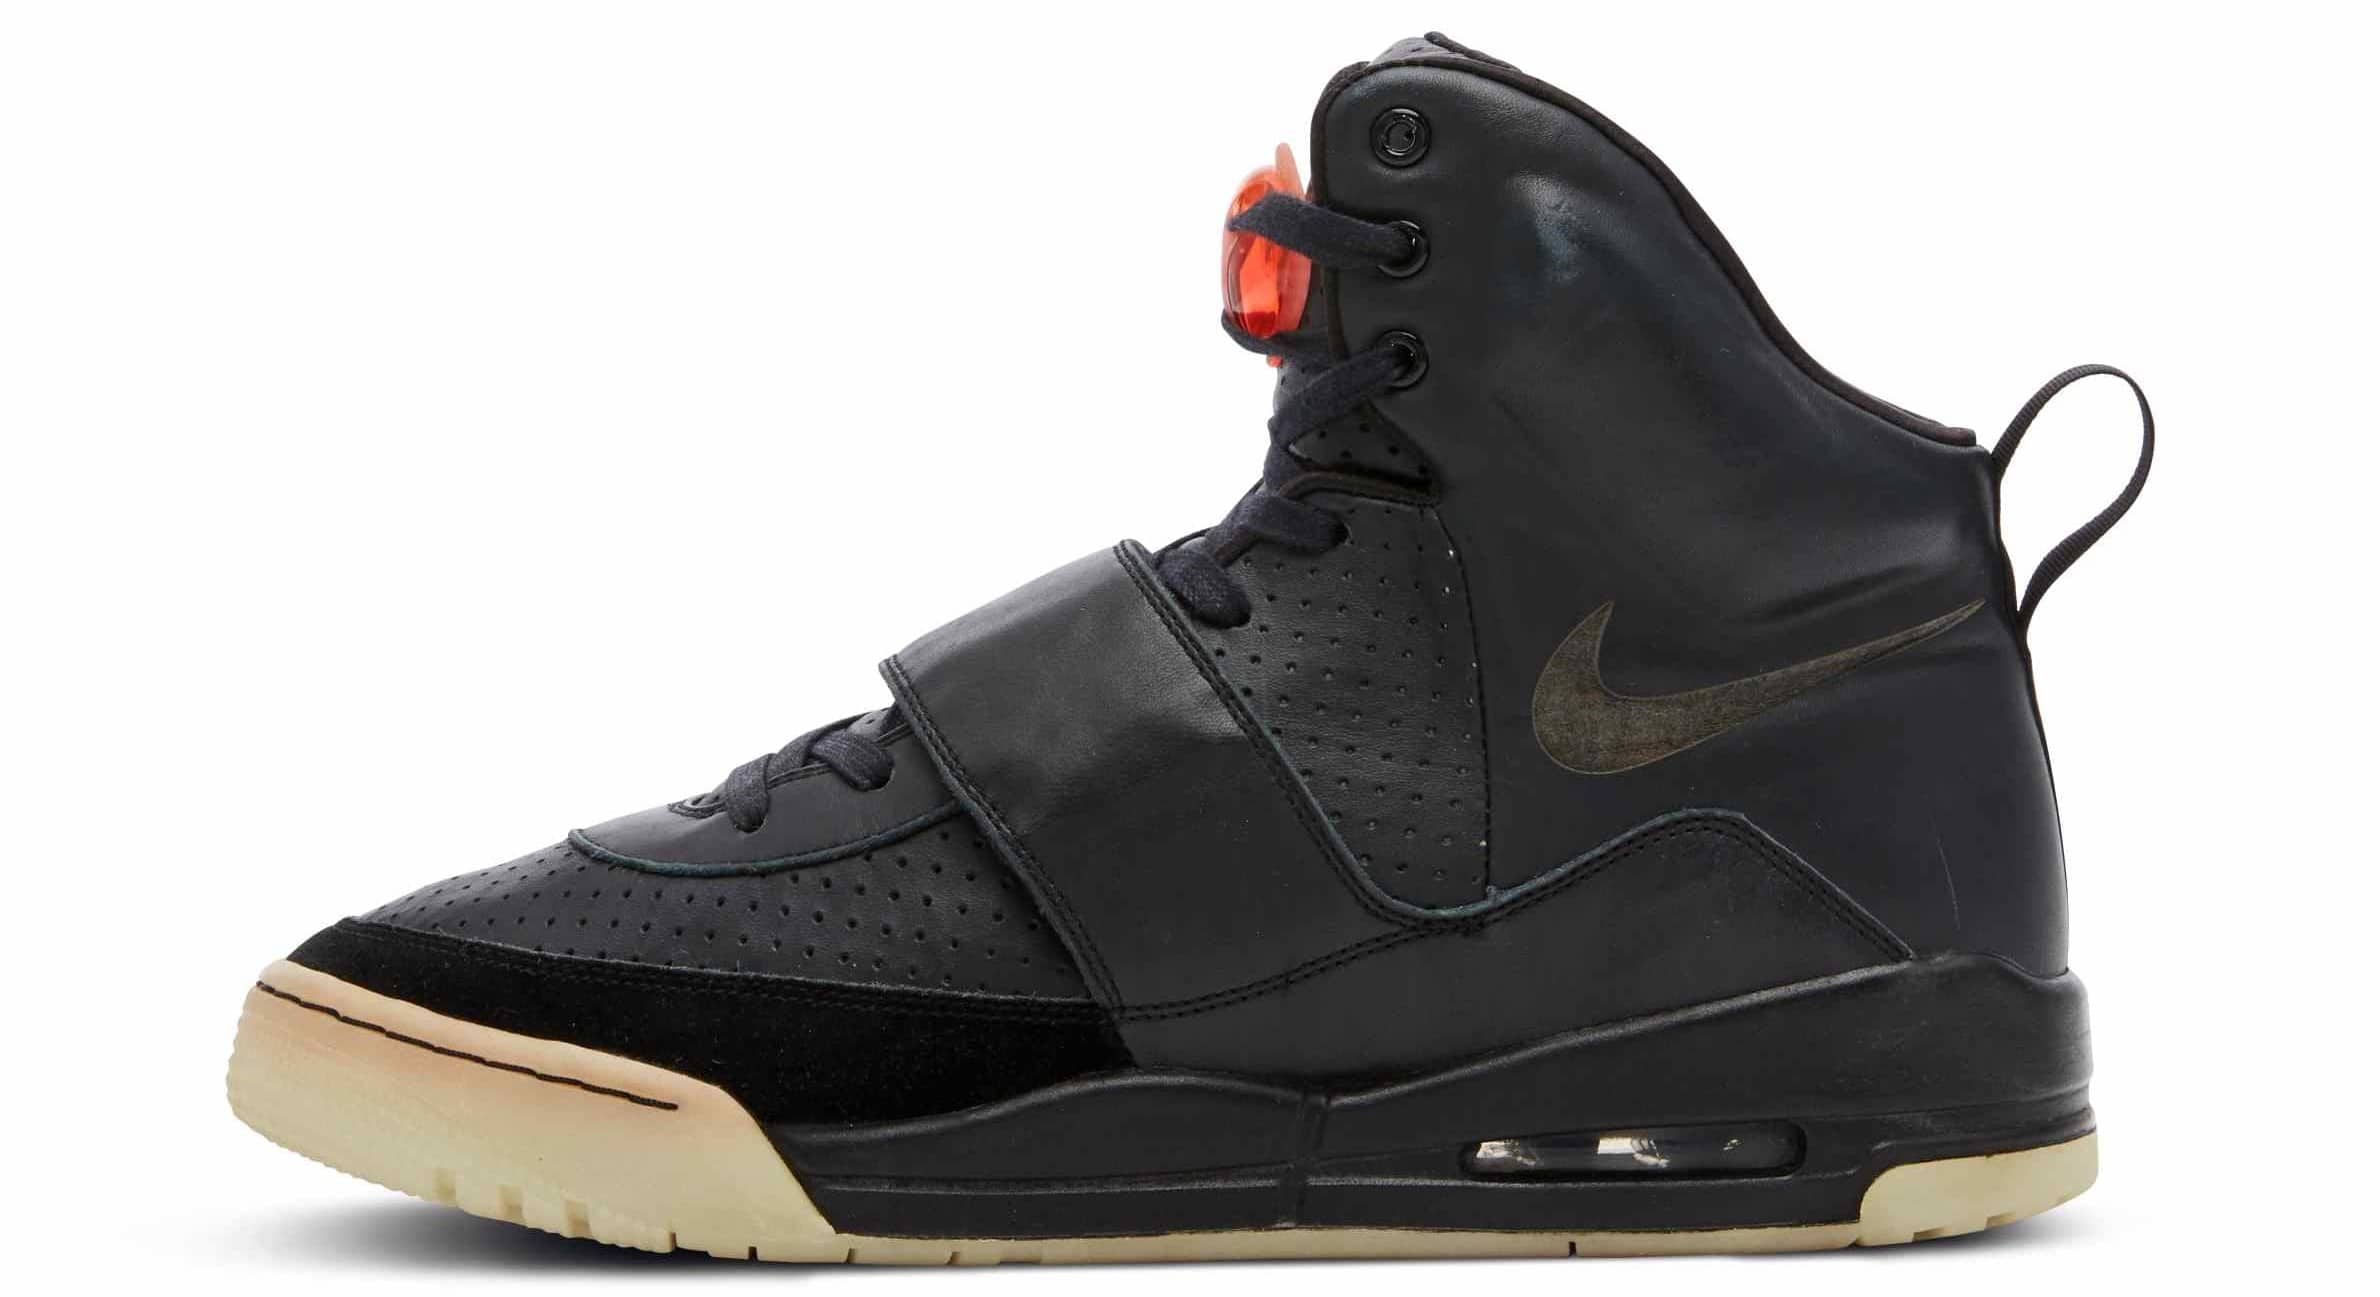 Kanye West's Nike Air Yeezy Prototype is going on sale for over $1 million 17